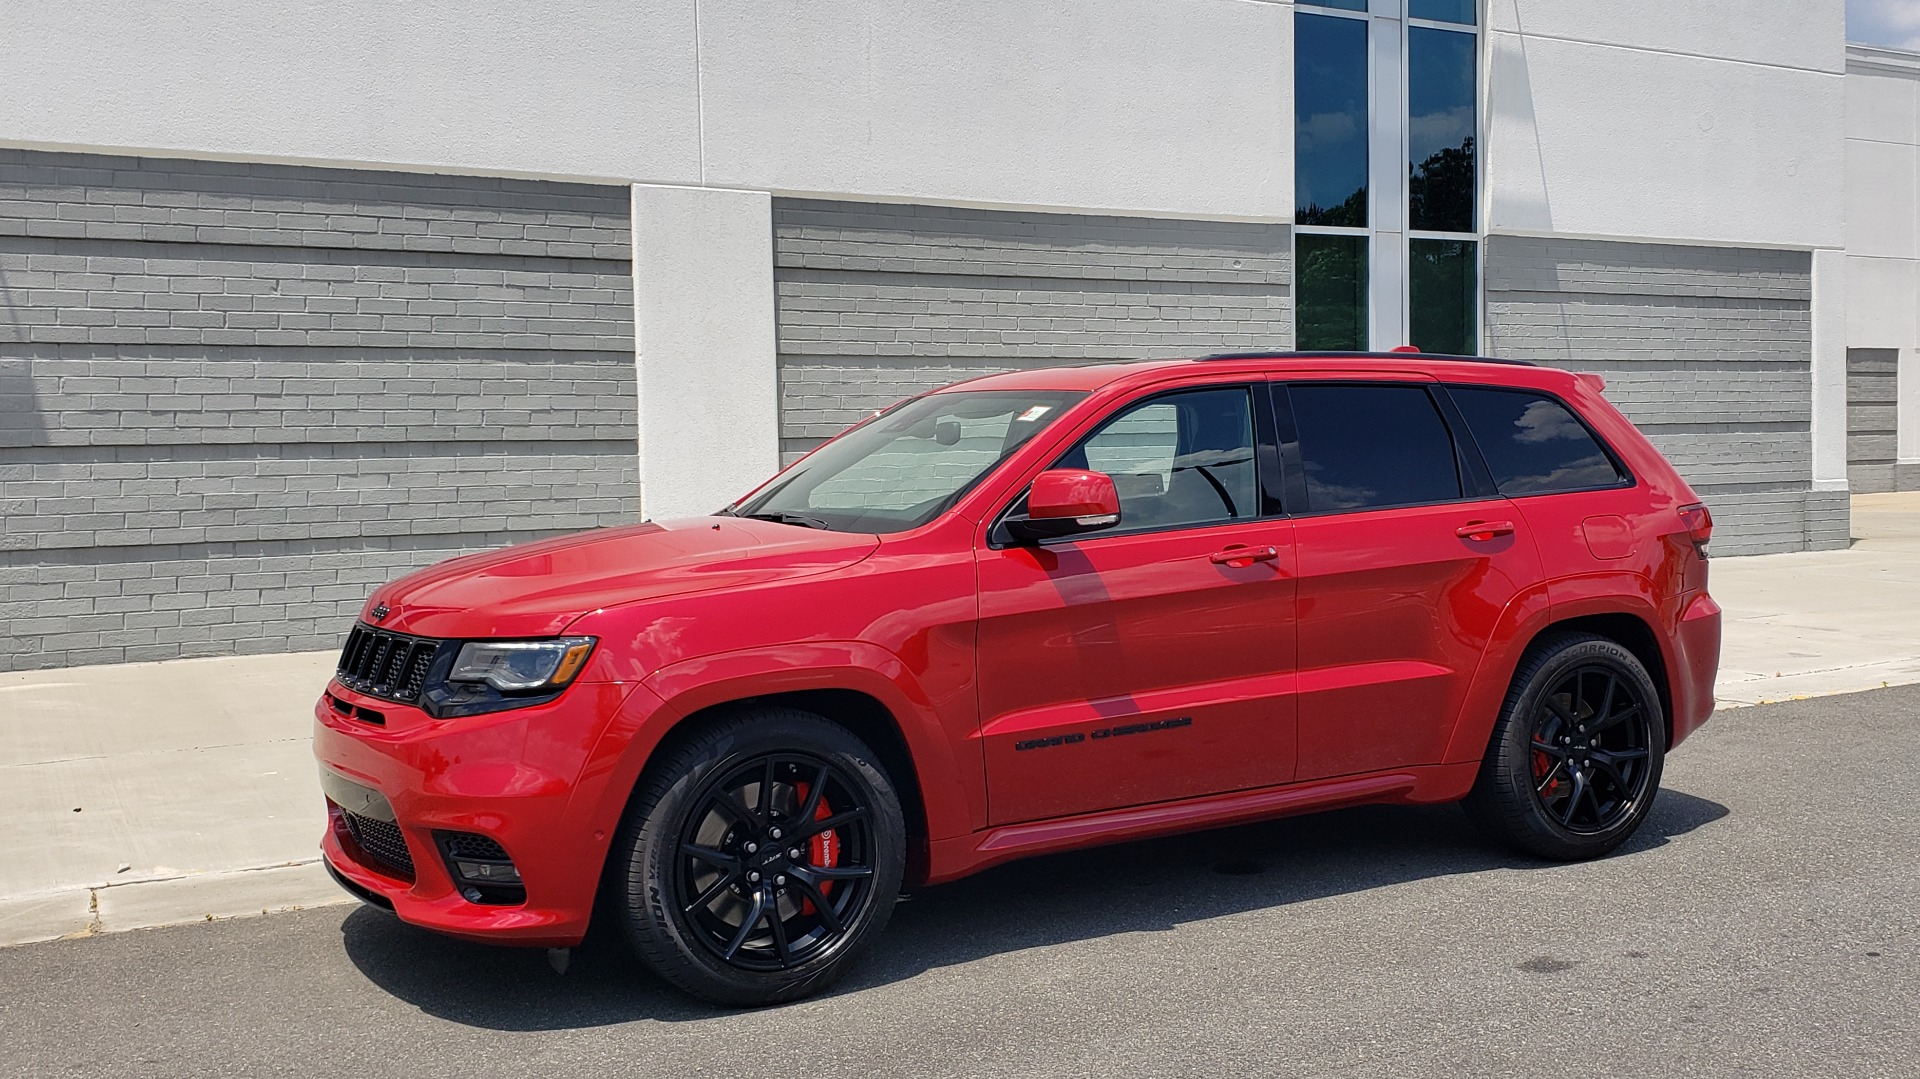 Used 2018 Jeep GRAND CHEROKEE SRT 4X4 / 6.4L HEMI (475HP) / NAV / SUNROOF / H/K SND / REARVIEW for sale Sold at Formula Imports in Charlotte NC 28227 2